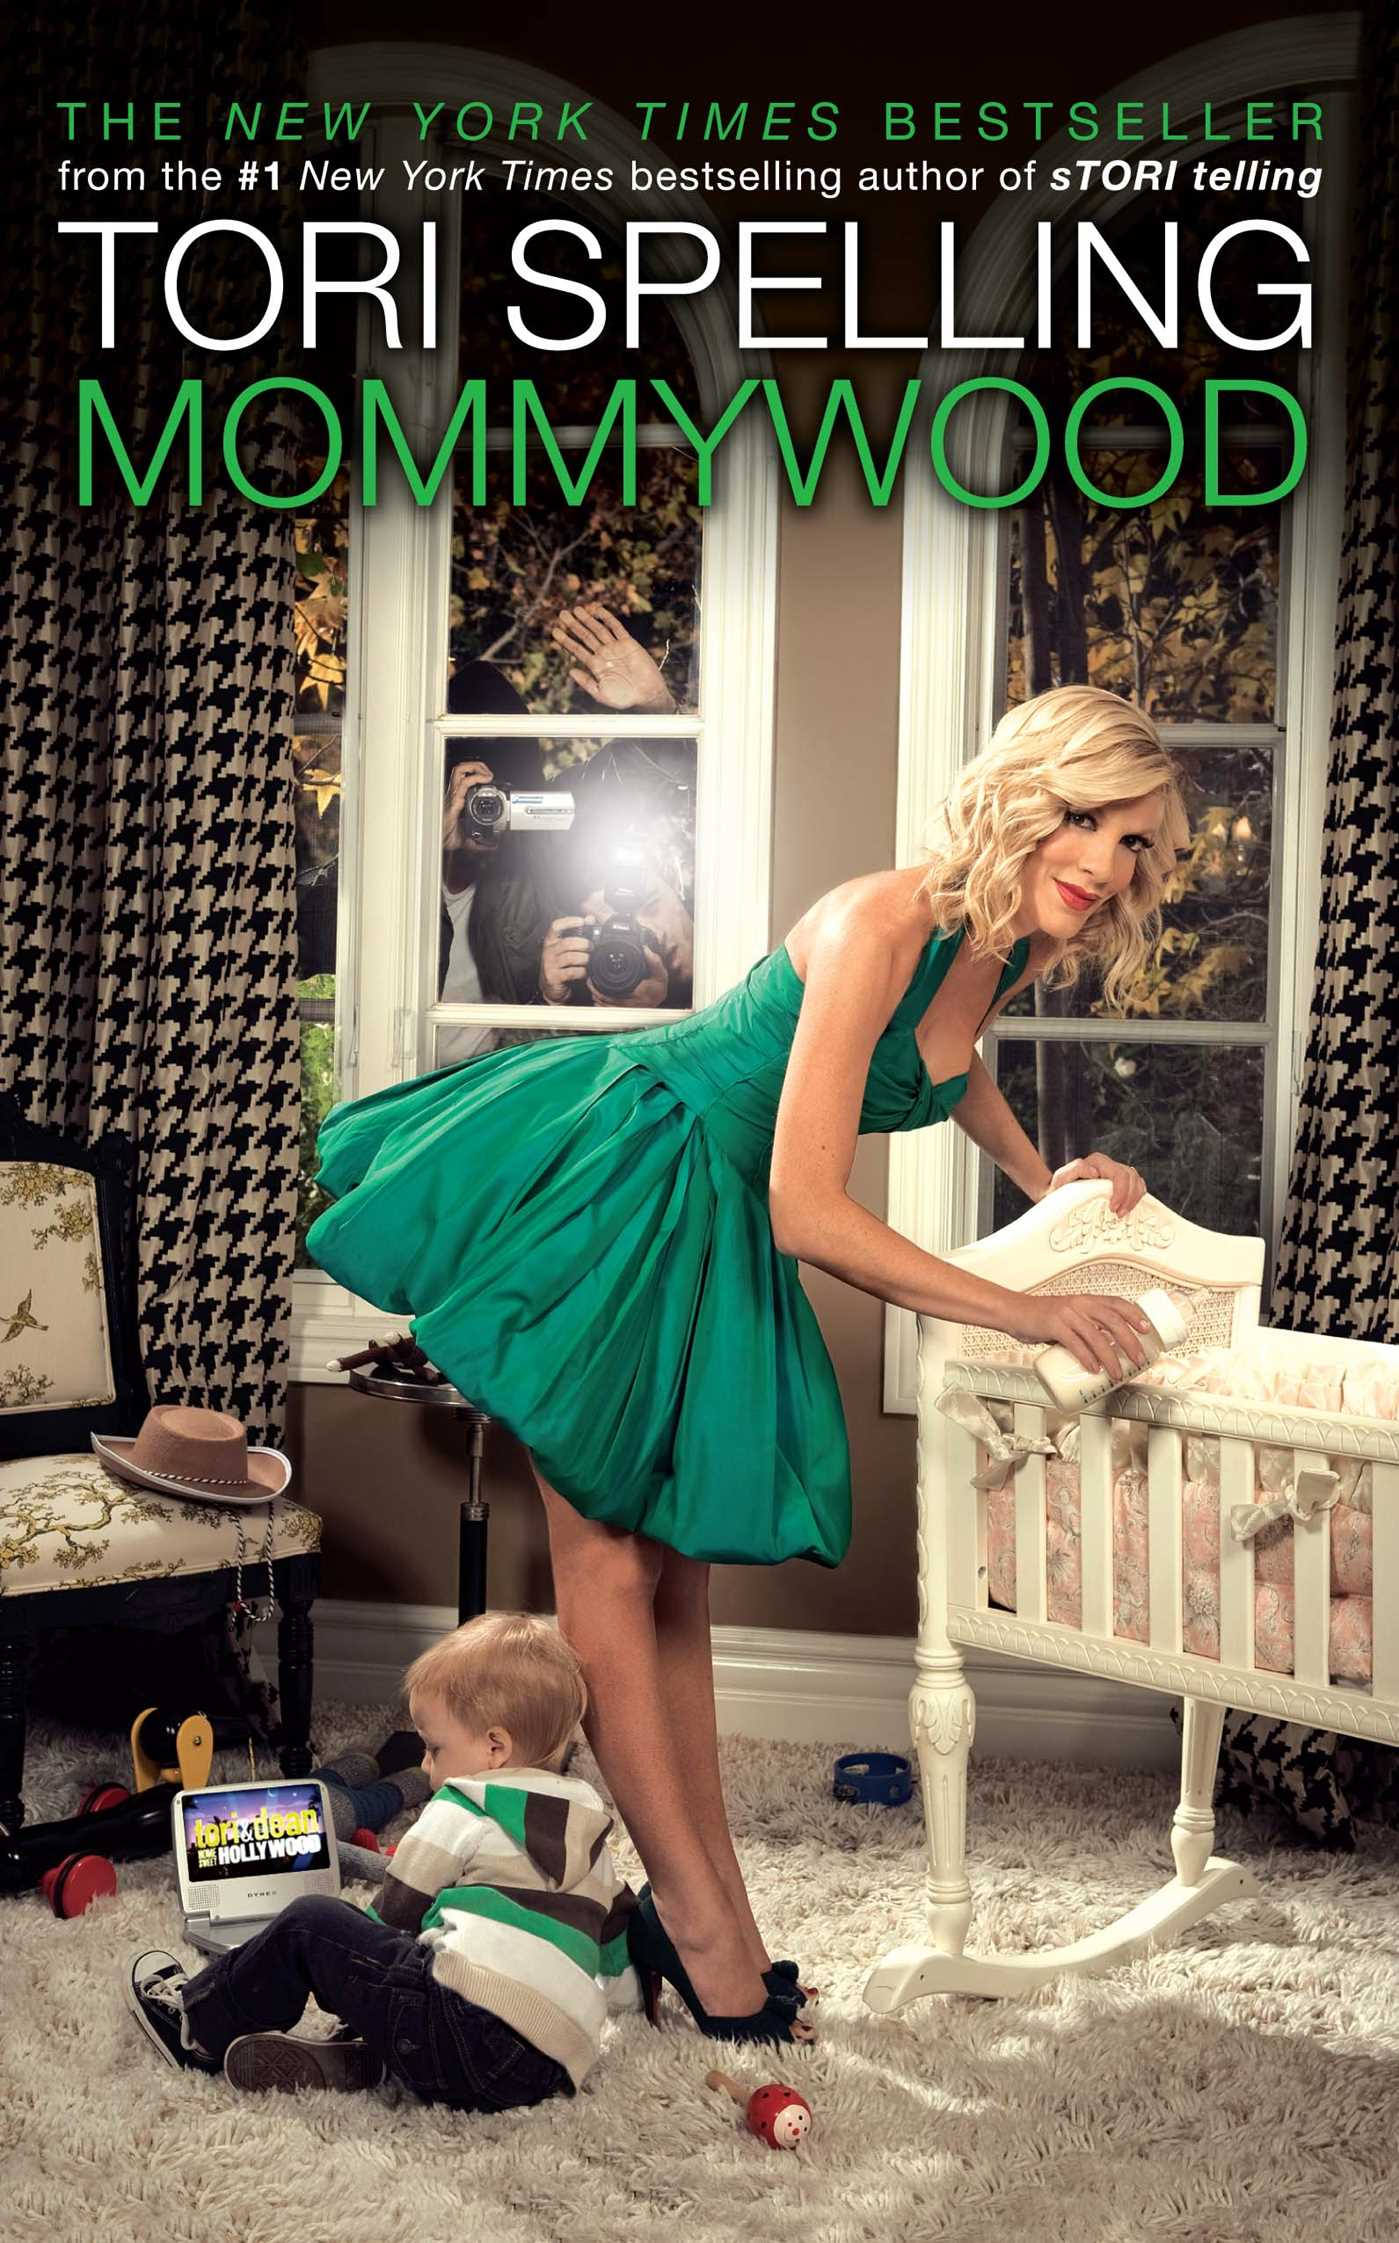 Mommywood 9781416599111 hr